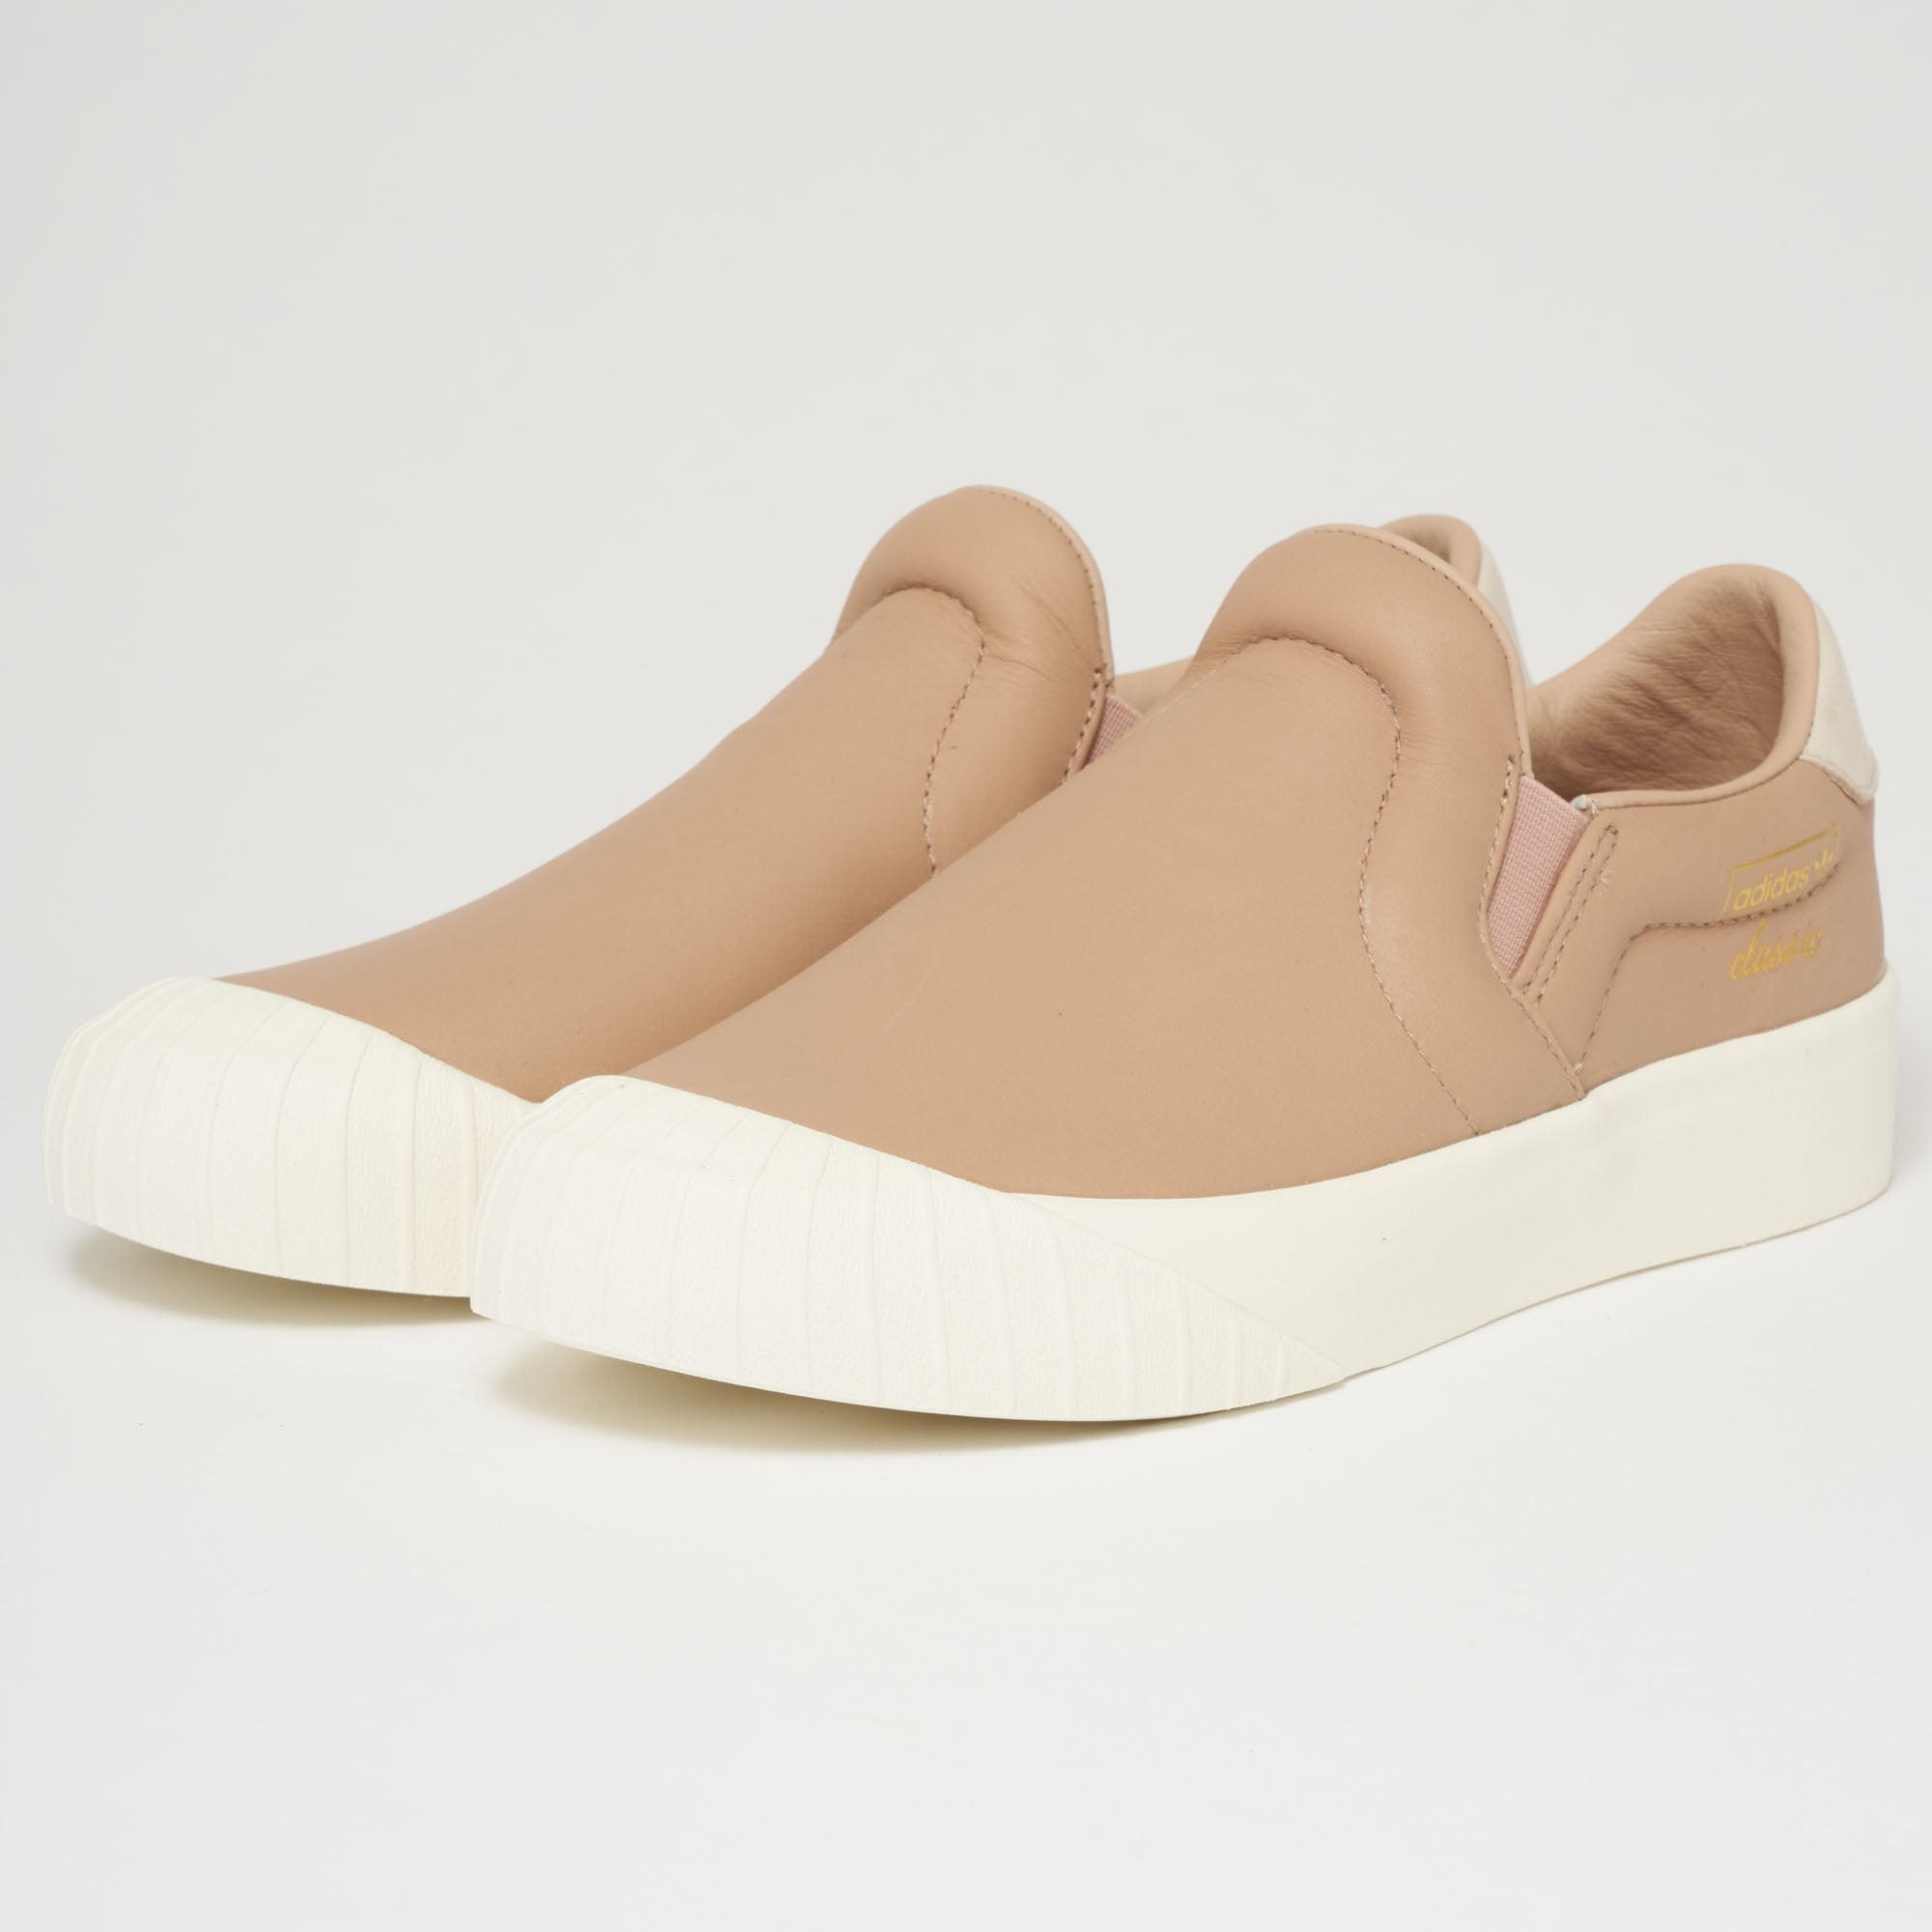 new product 11096 267d7 Everyn Slip-On Trainer - Ash Pearl